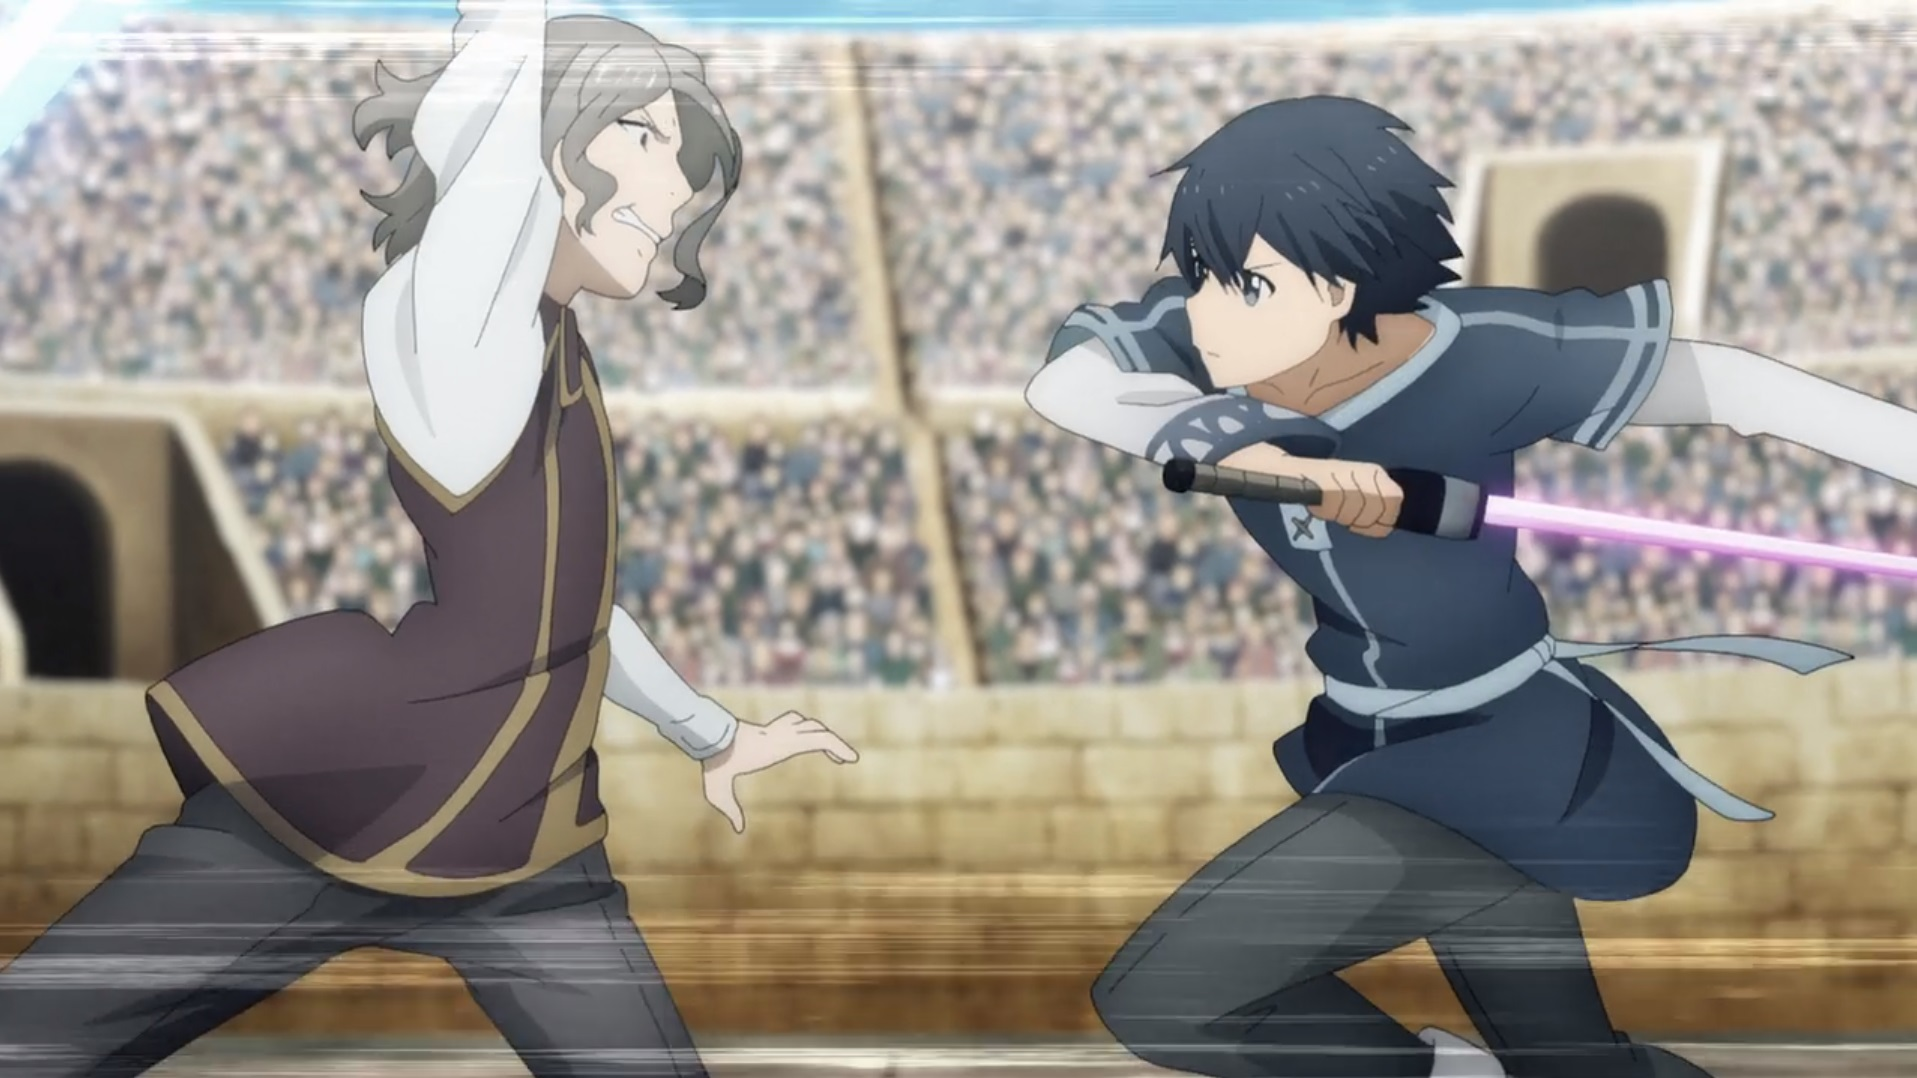 What Happened in the Chunk of Story Sword Art Online